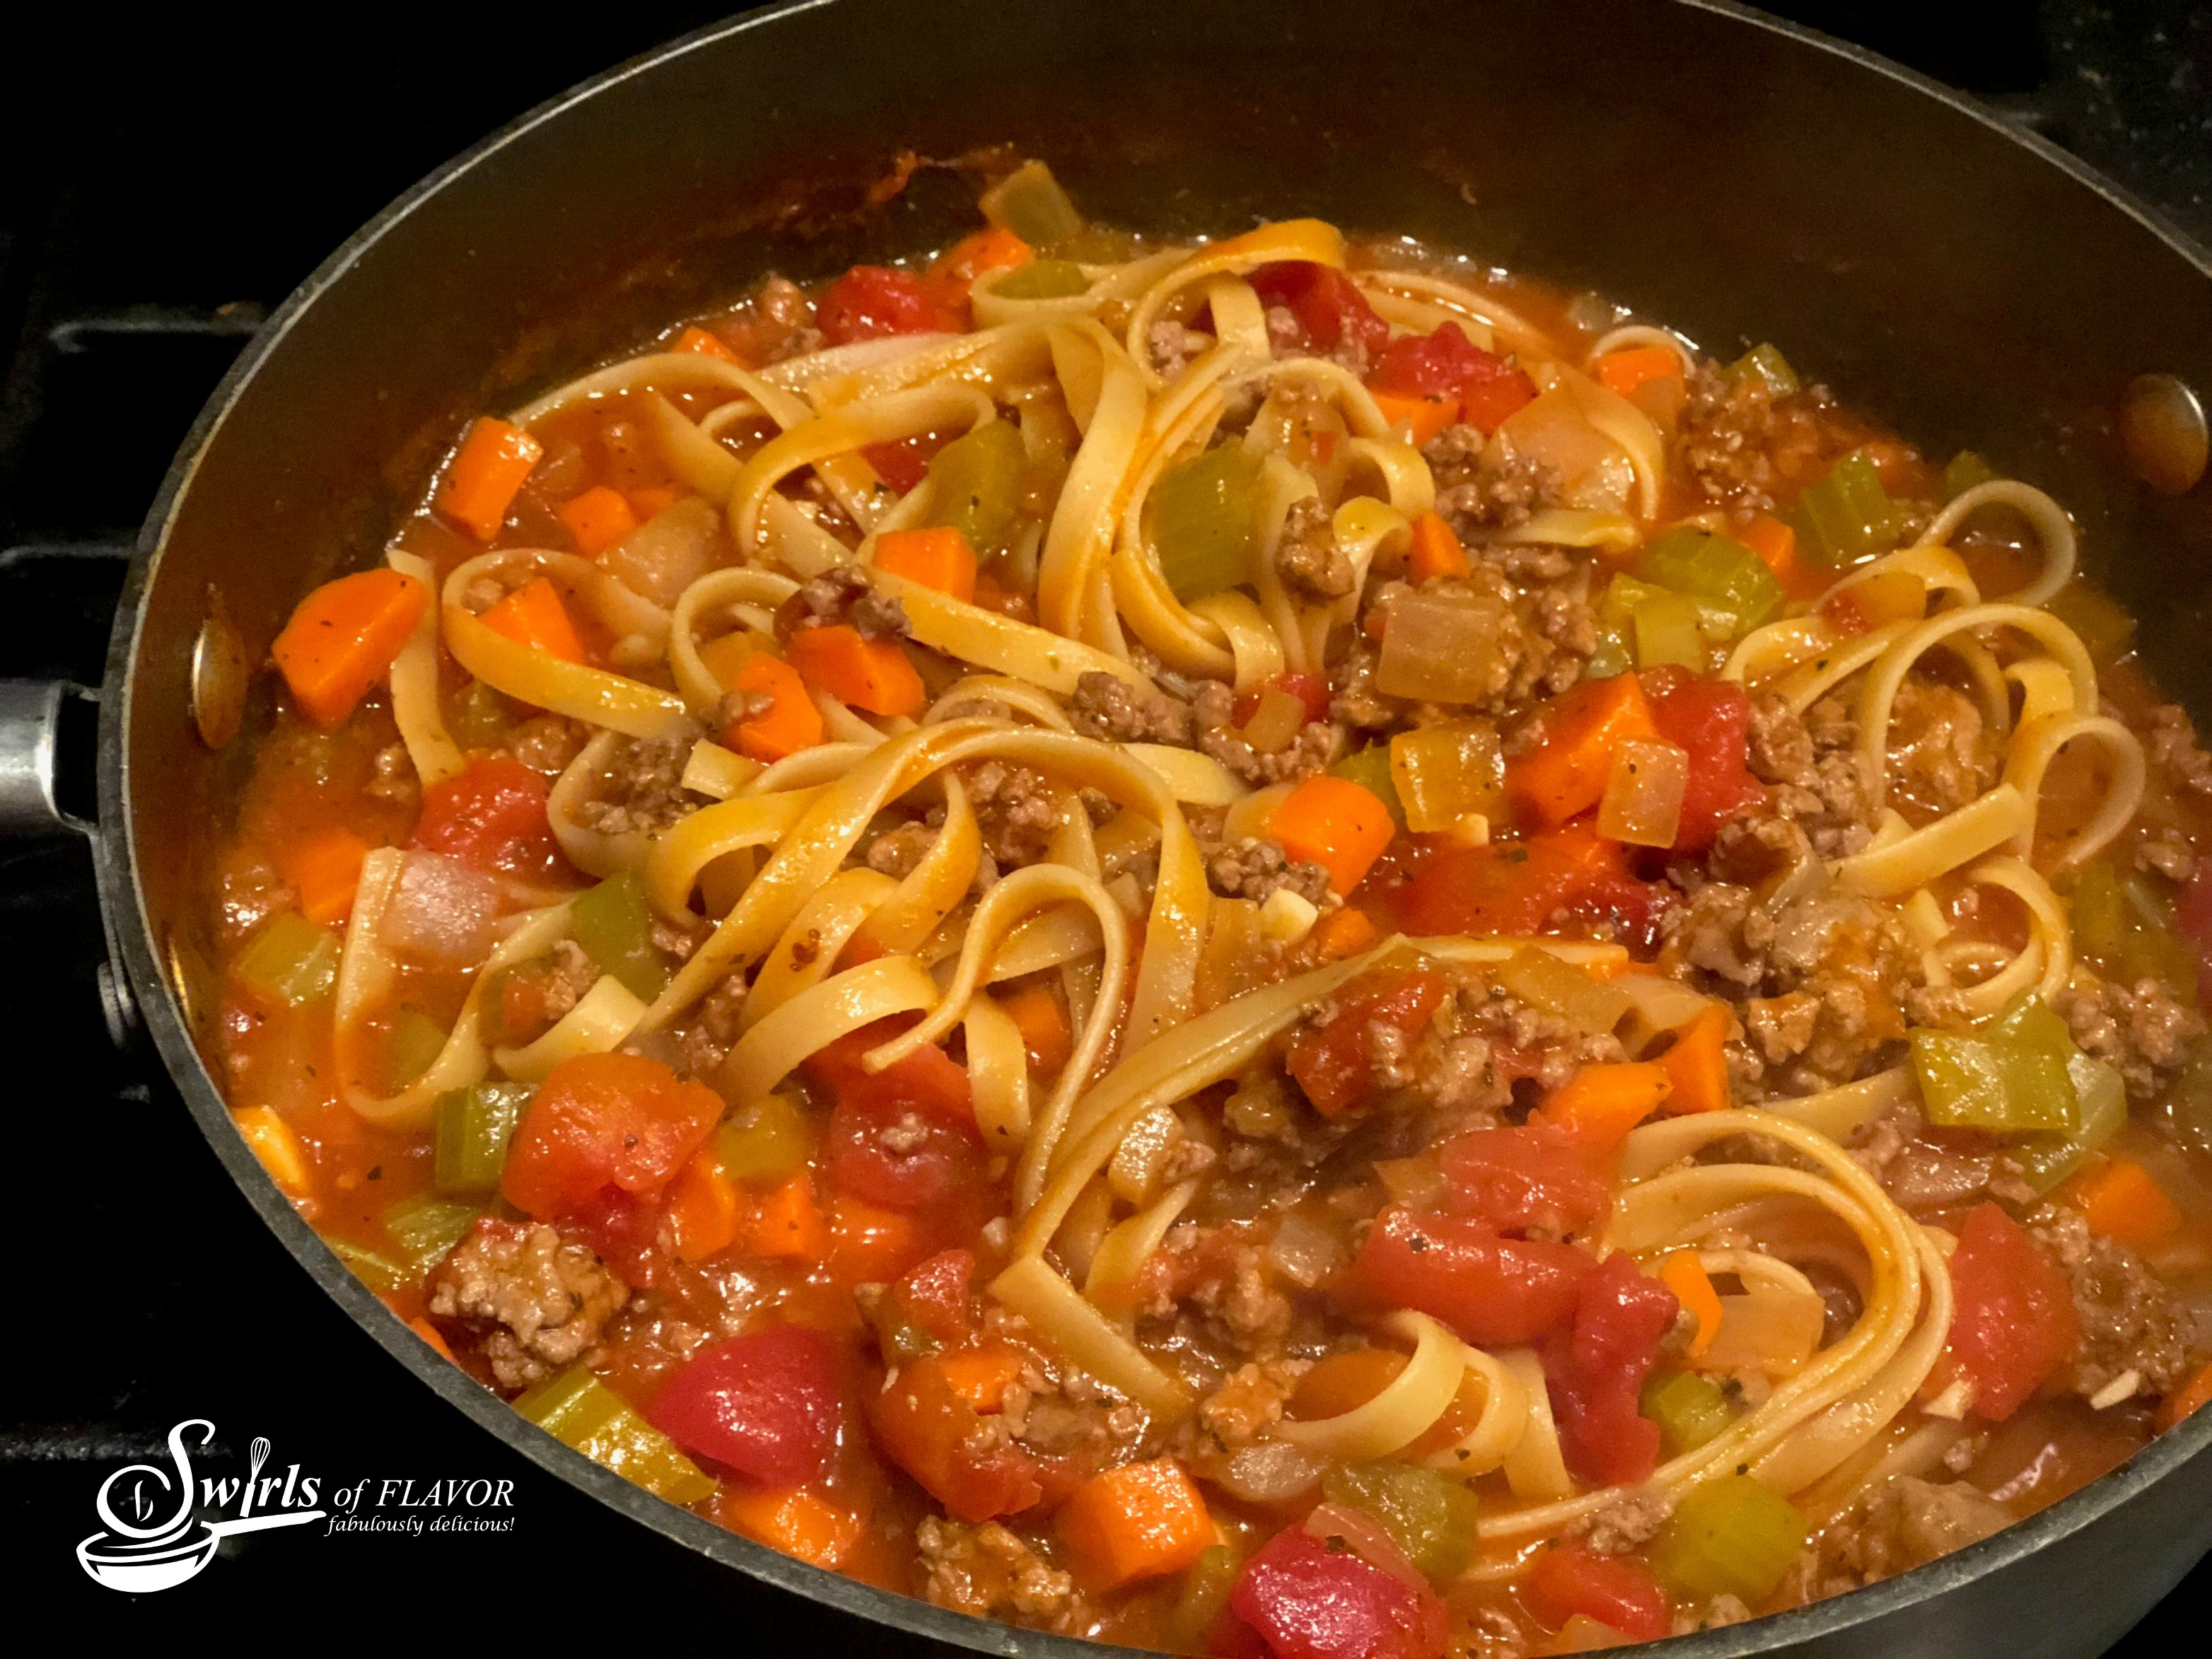 fettuccine bolognese recipe cooking in a skillet with deep sides